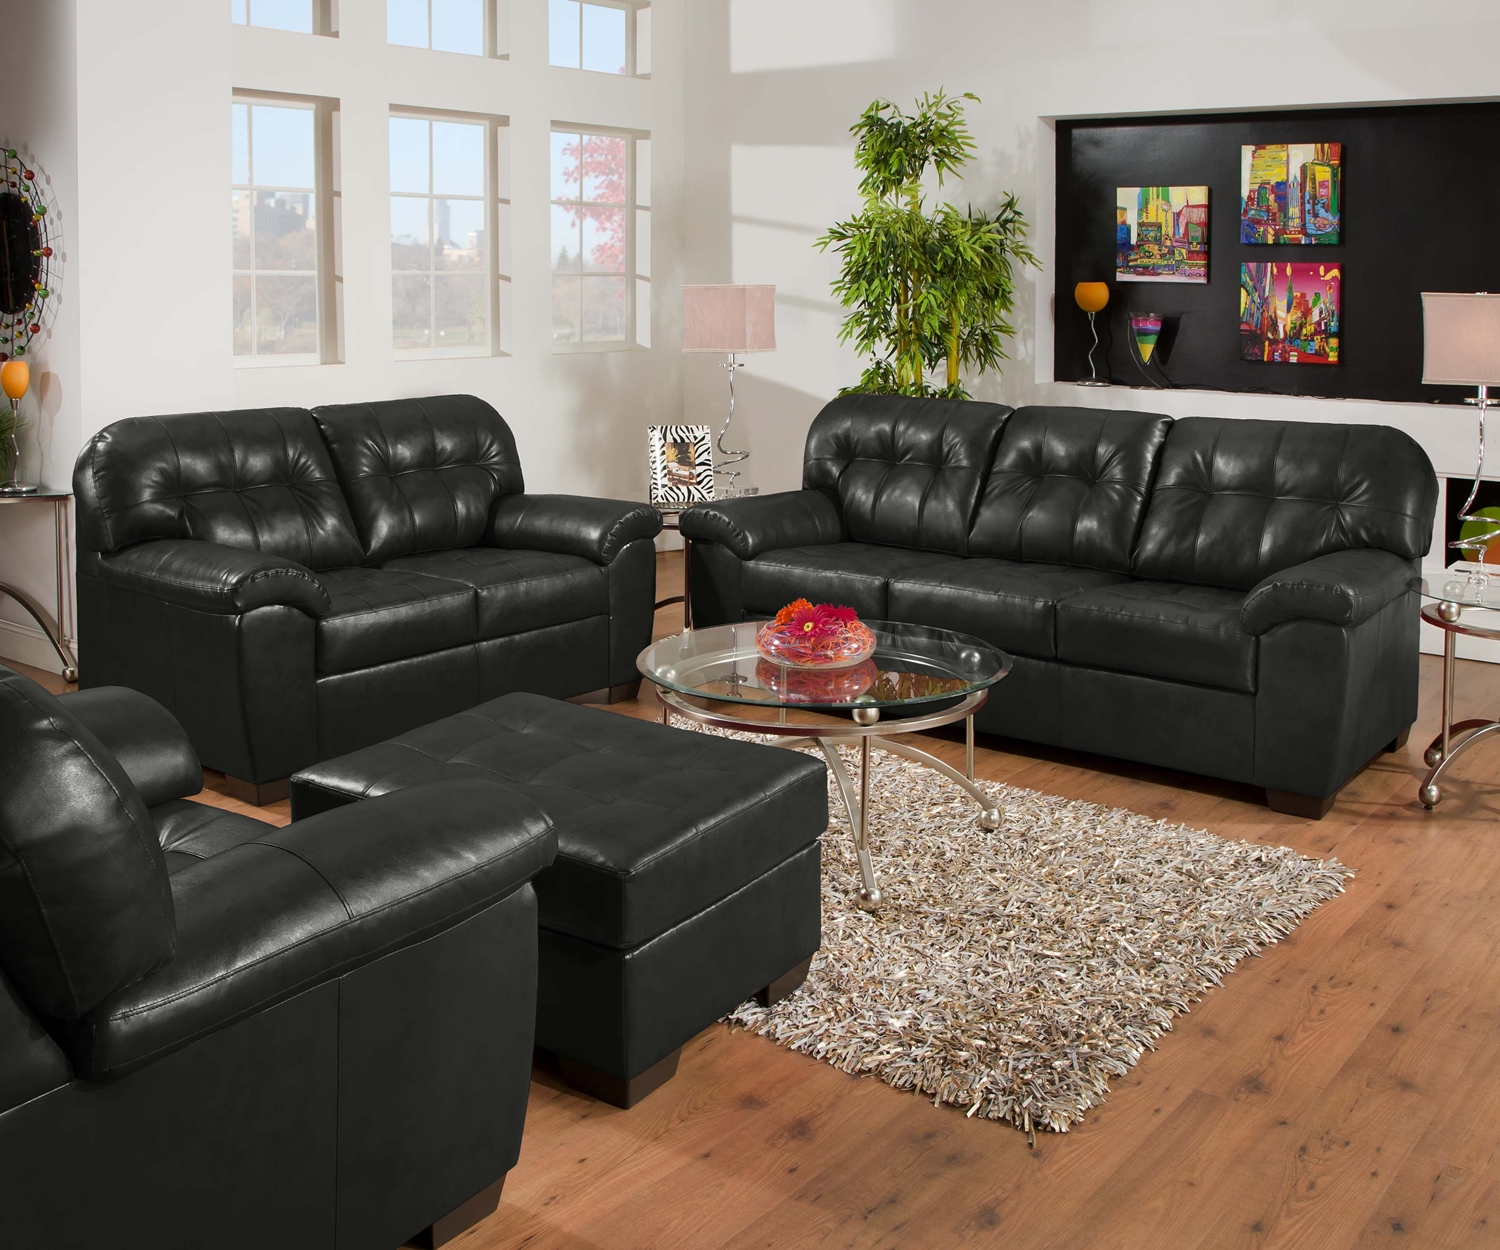 onyx black contemporary tufted bonded leather living room set simmons